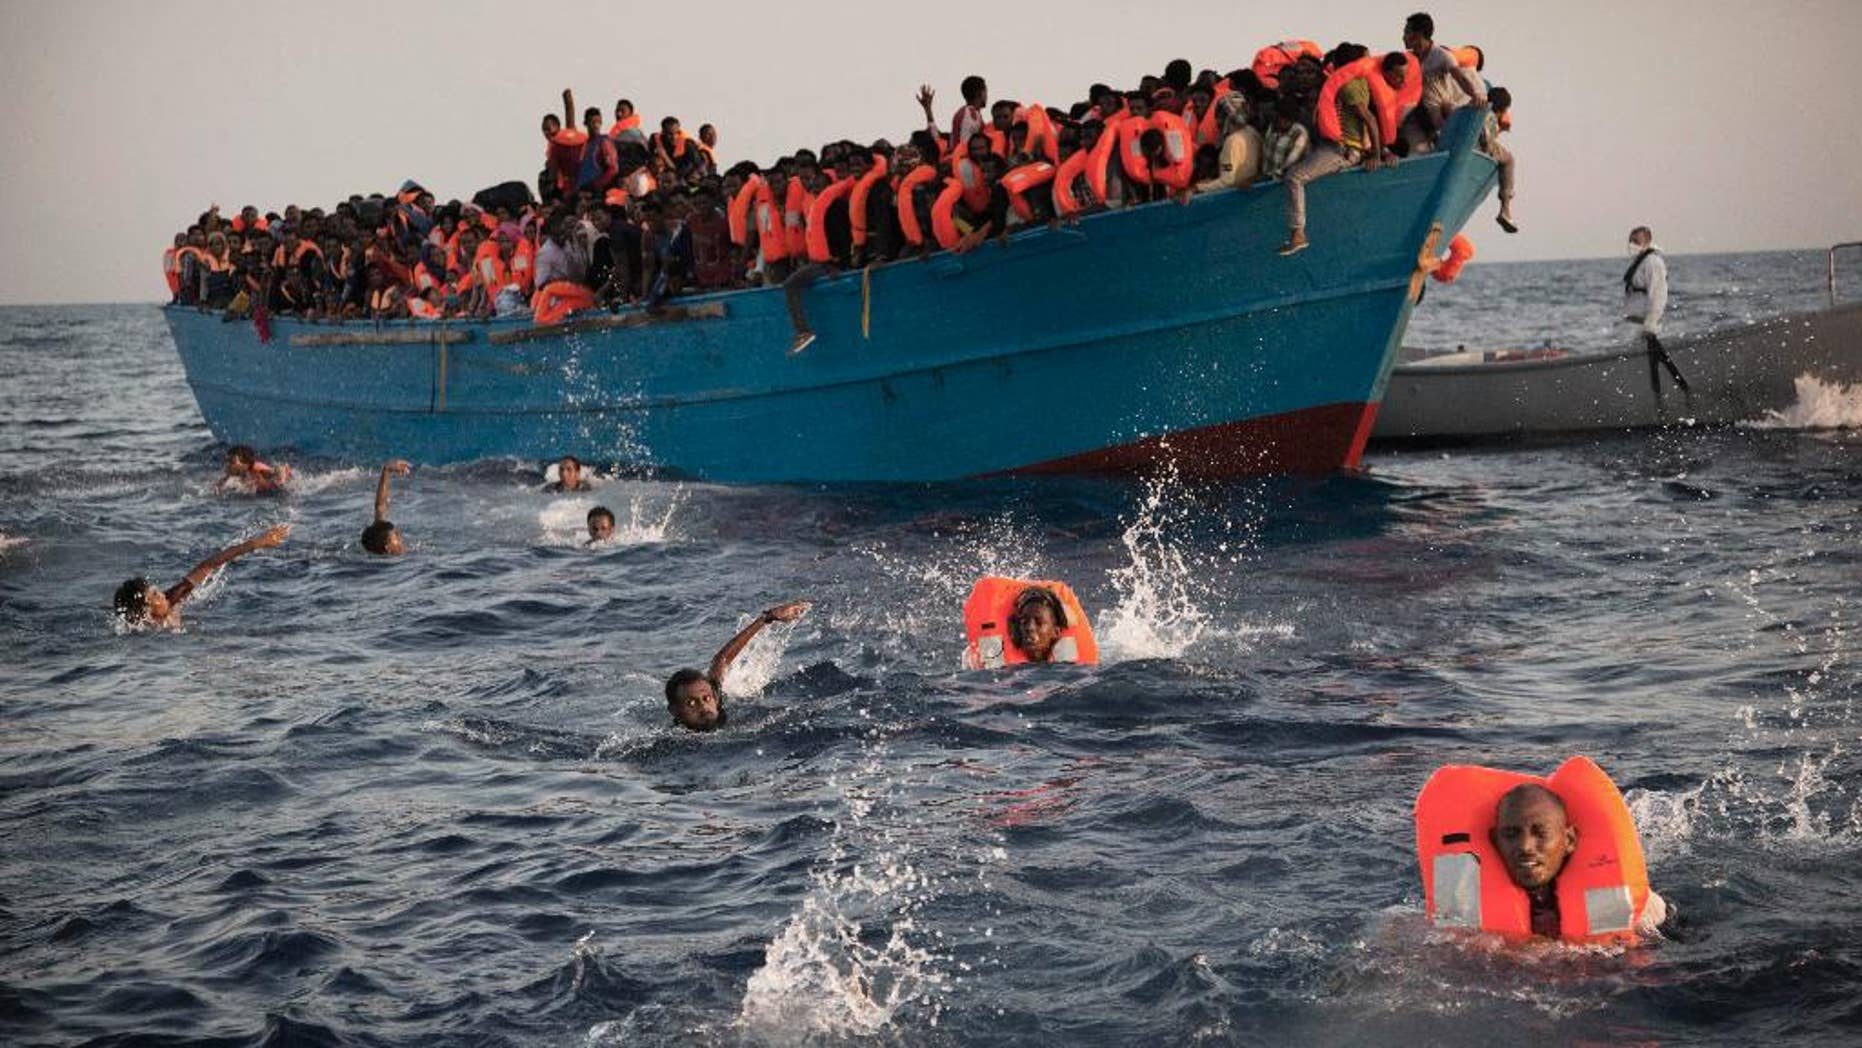 FILE - In this Aug. 29, 2016 file photo, migrants, most from Eritrea, jump into the water from a crowded wooden boat as they are helped by members of a nongovernmental organization during a rescue operation in the Mediterranean Sea, about 13 miles (20 kilometers) north of Sabratha, Libya. A new EU report accessed by The Associated Press on Thursday, Dec. 1, 2016, says that Libya's coastal cities are generating up to 325 million euros ($346 million) in revenue each year from people smuggling. (AP Photo/Emilio Morenatti, File)